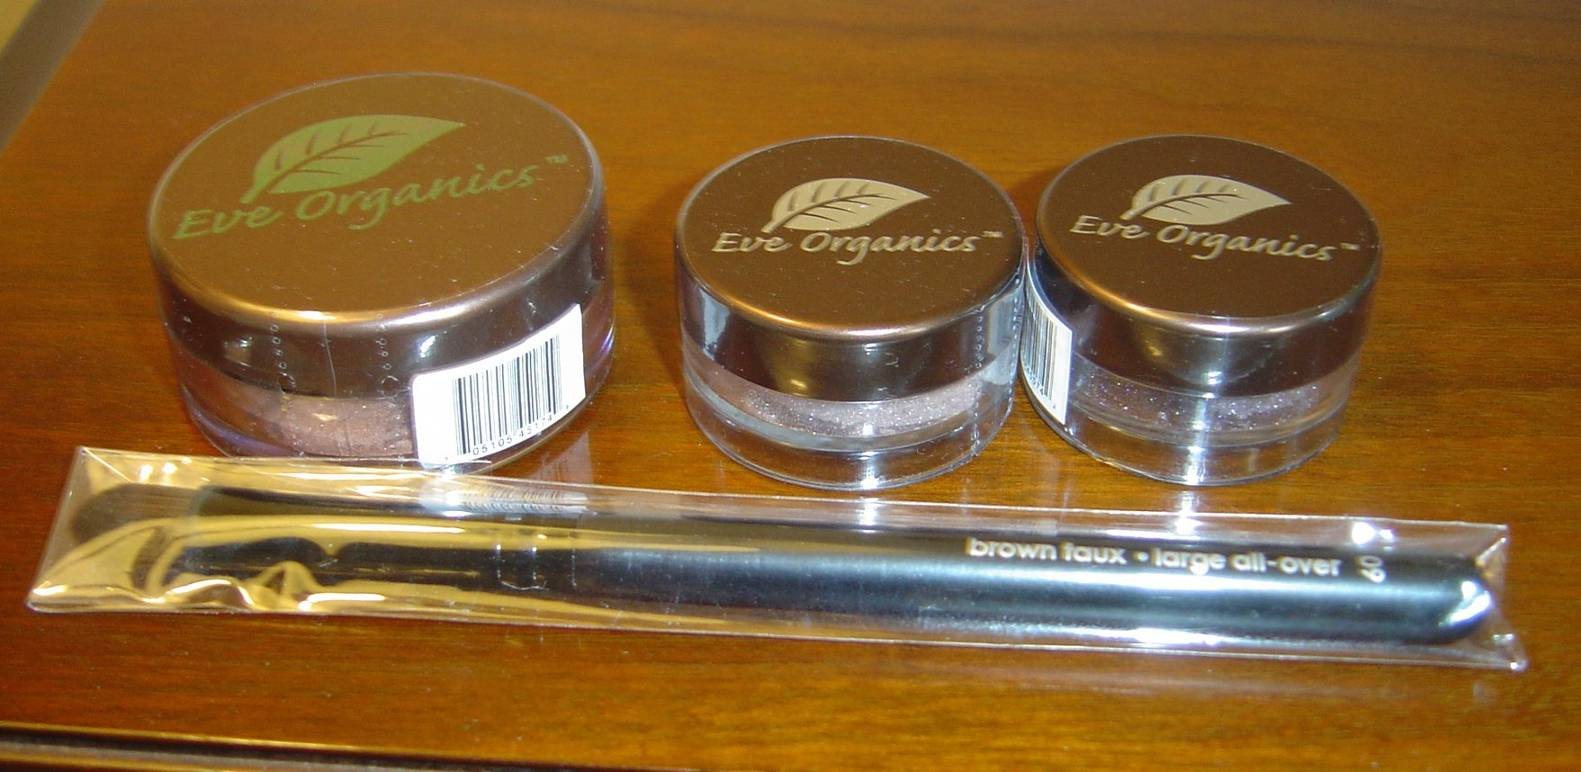 Eve-Organics Beauty mineral makeup